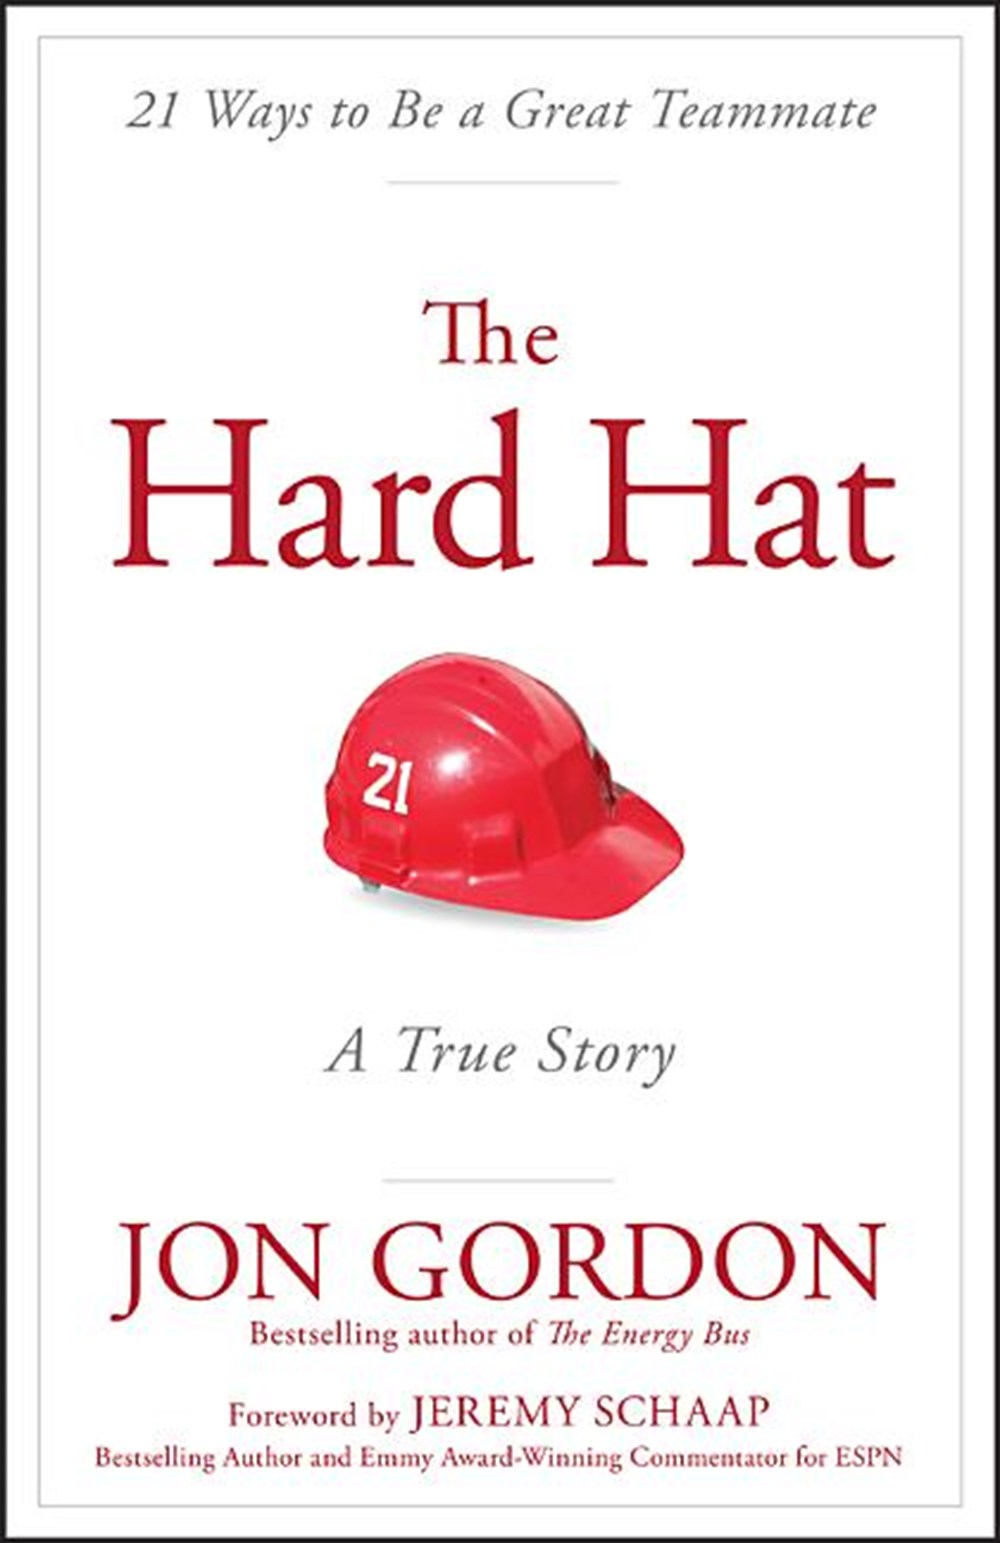 Hard Hat 21 Ways to Be a Great Teammate